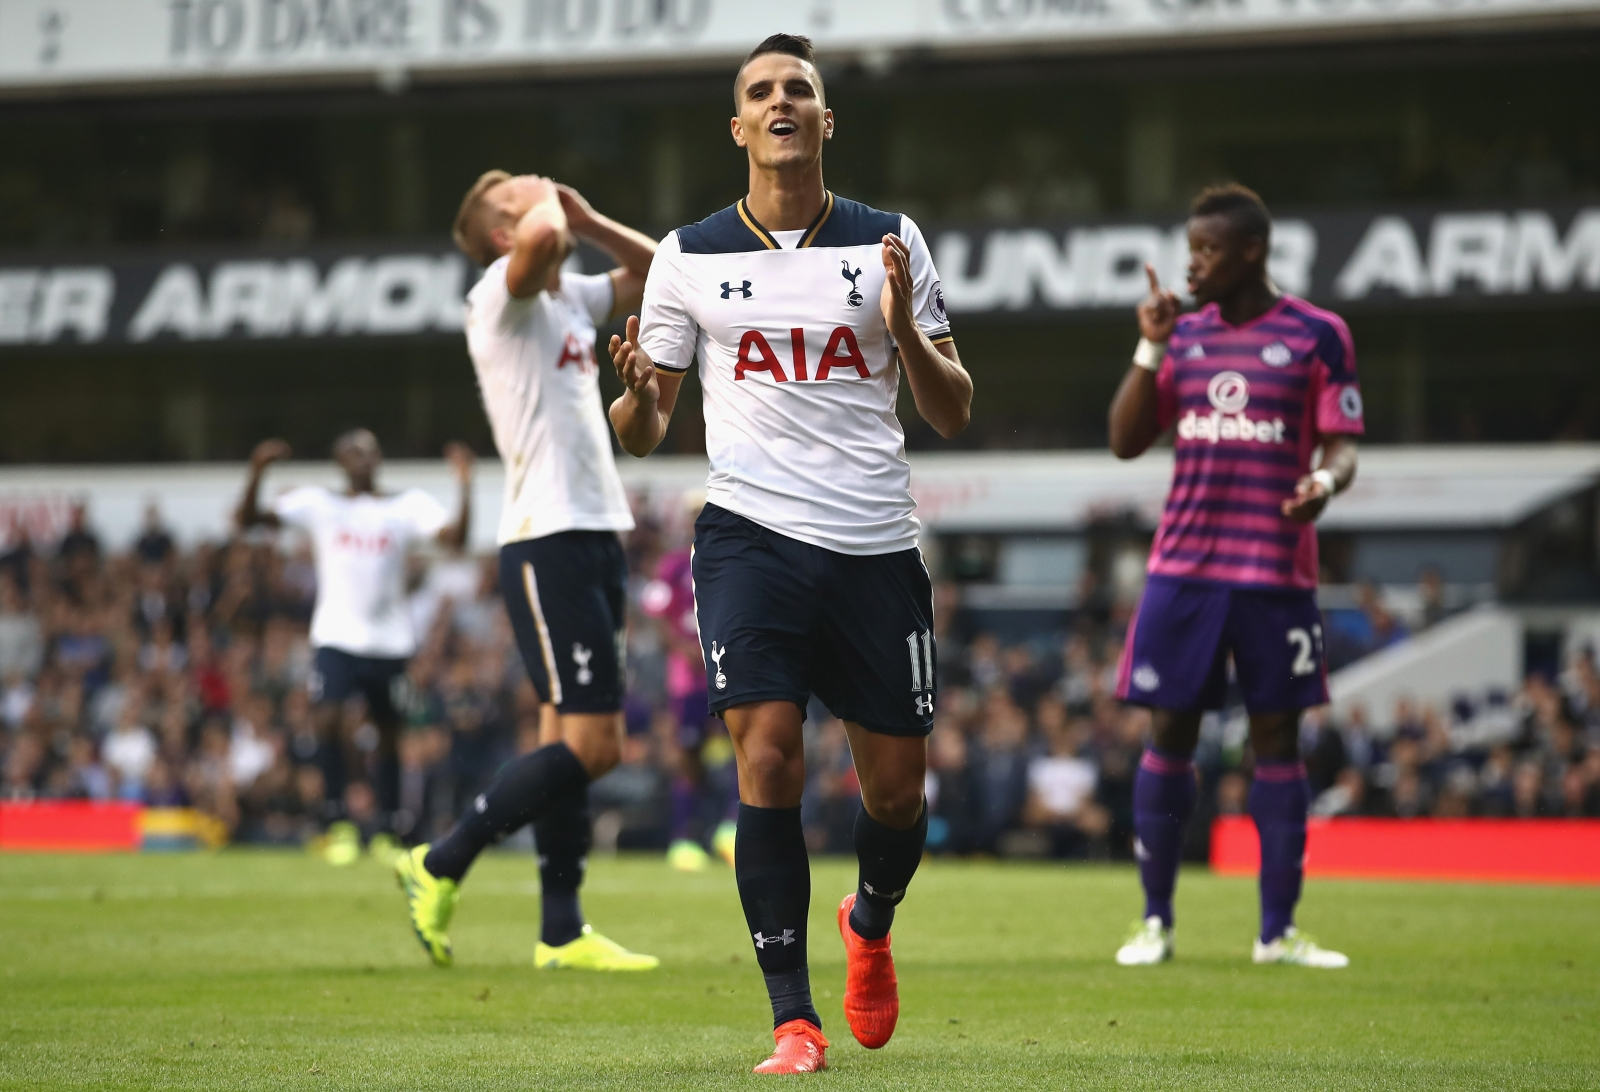 tottenham erik lamela has udesireu to one day return to boyhood club river plate